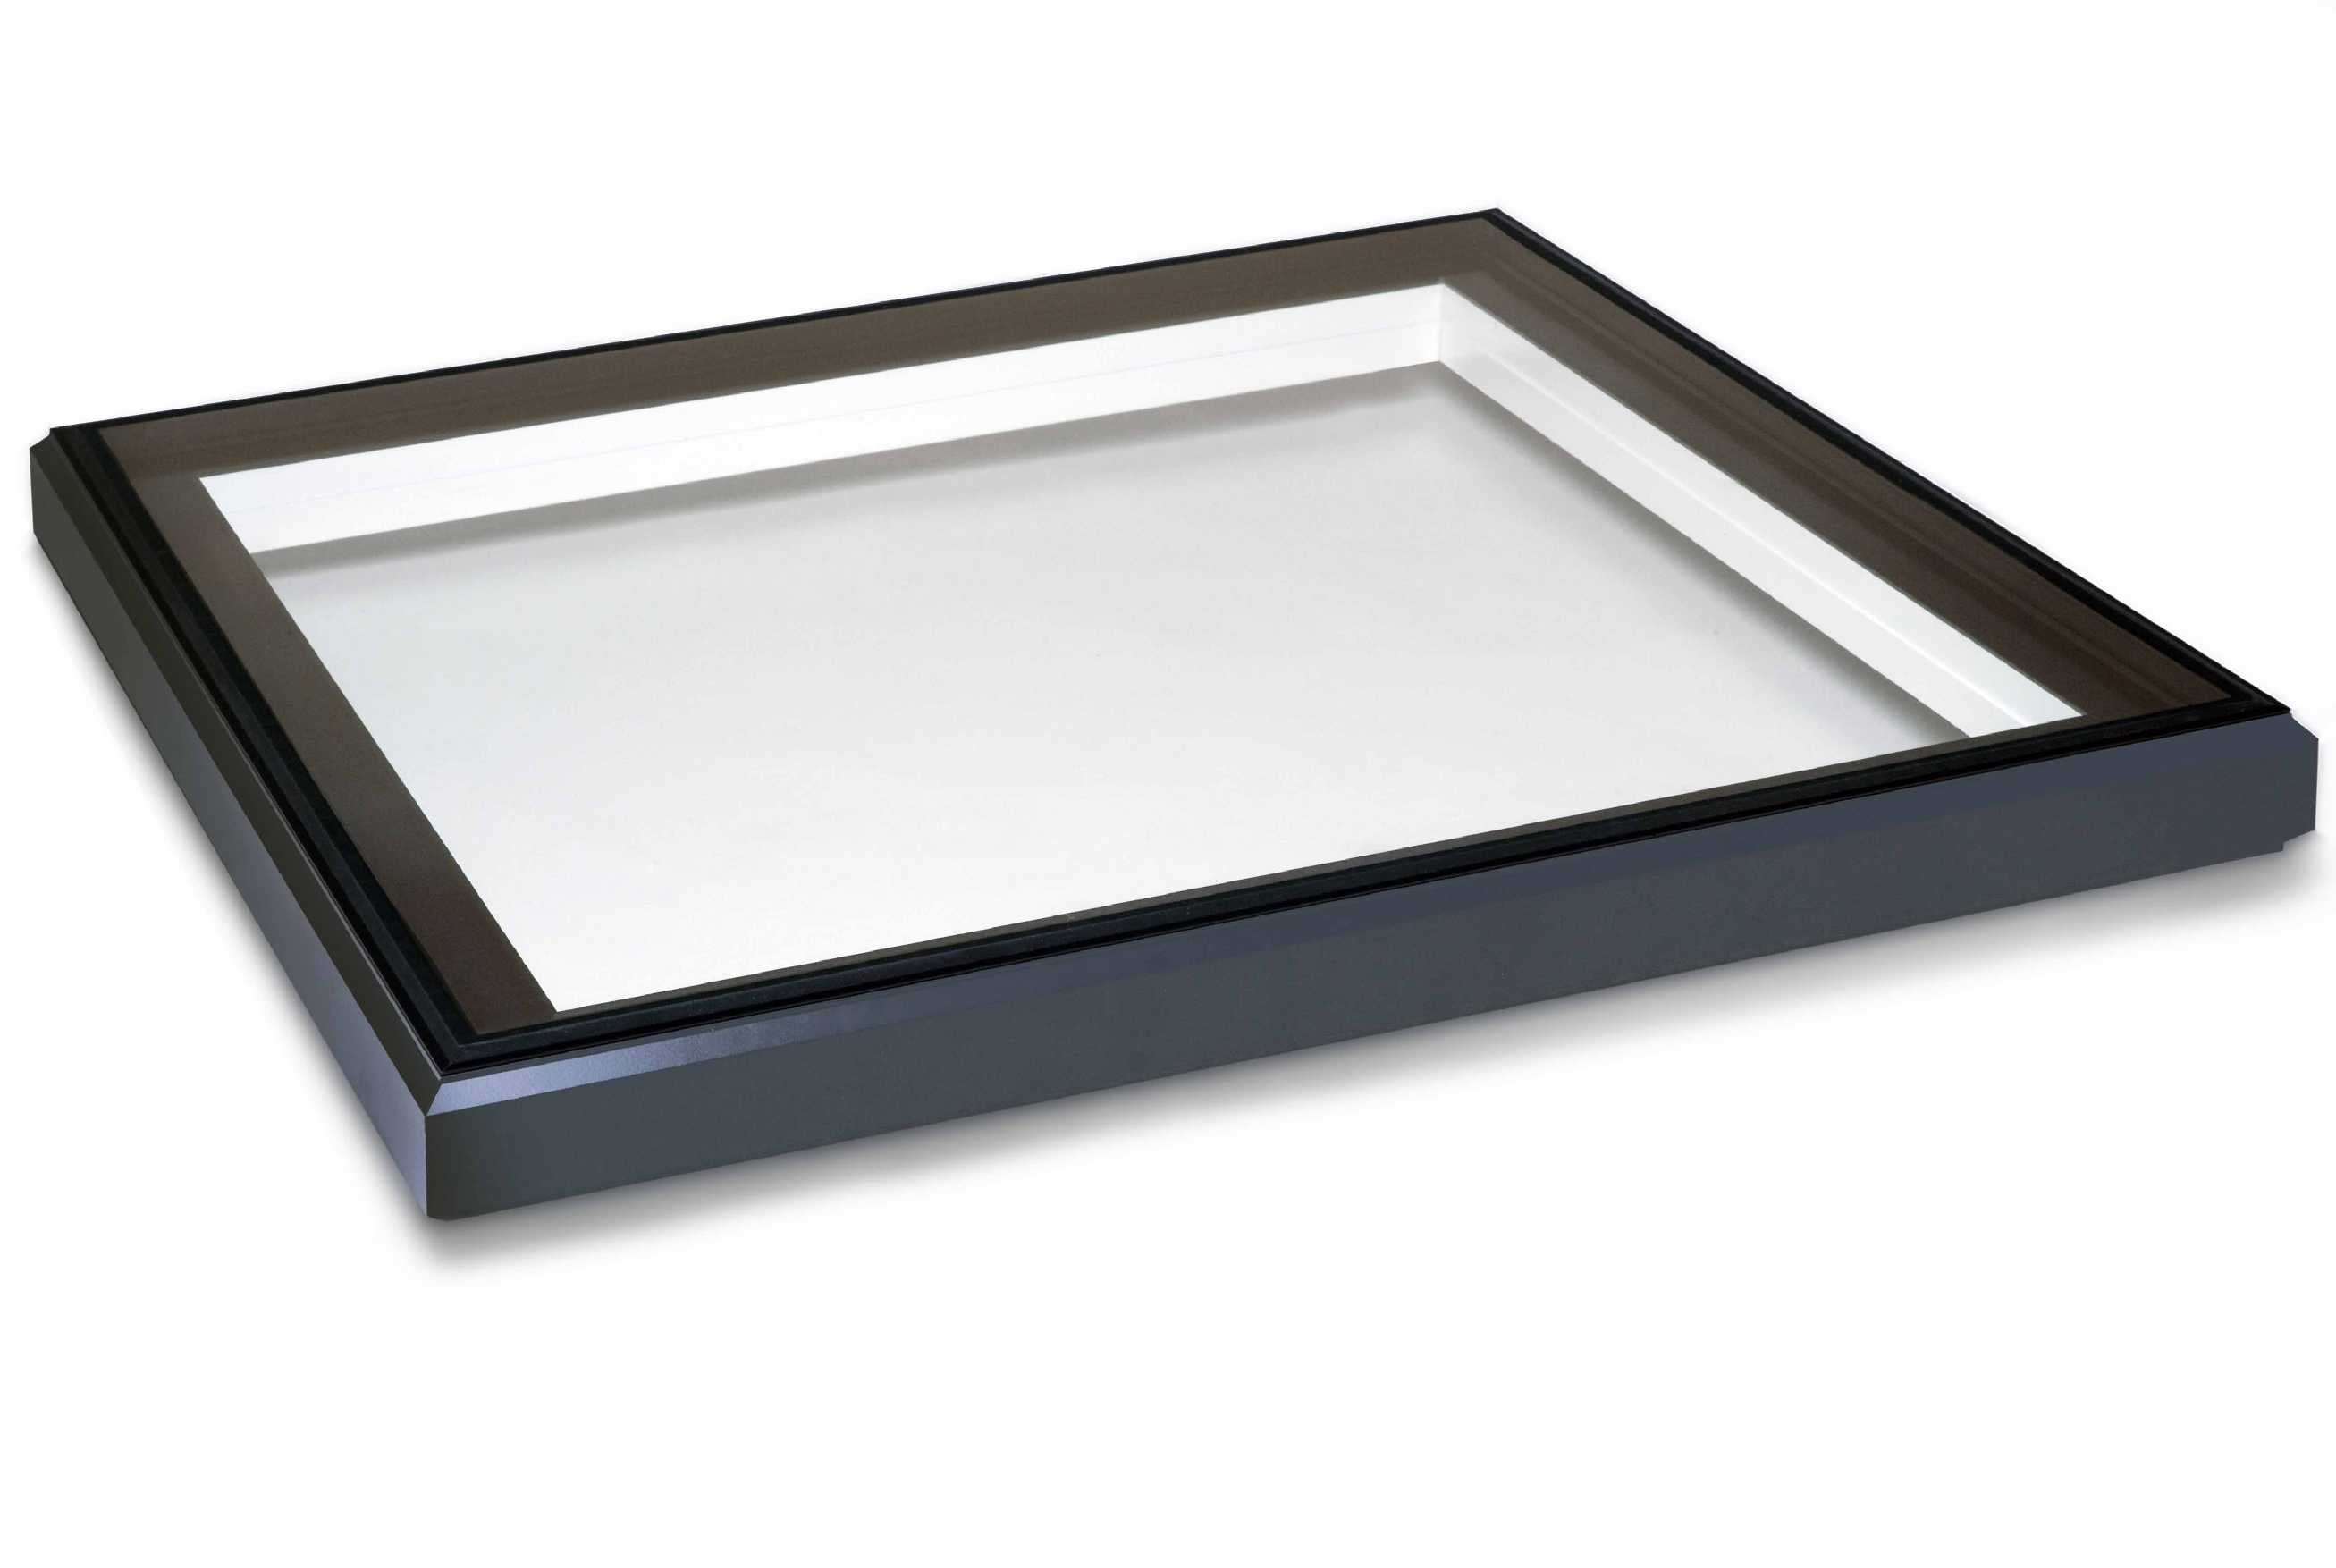 Buy EcoGard Flat Roof light, Triple Glazed, Fixed, 1,000mm x 2,000mm online today